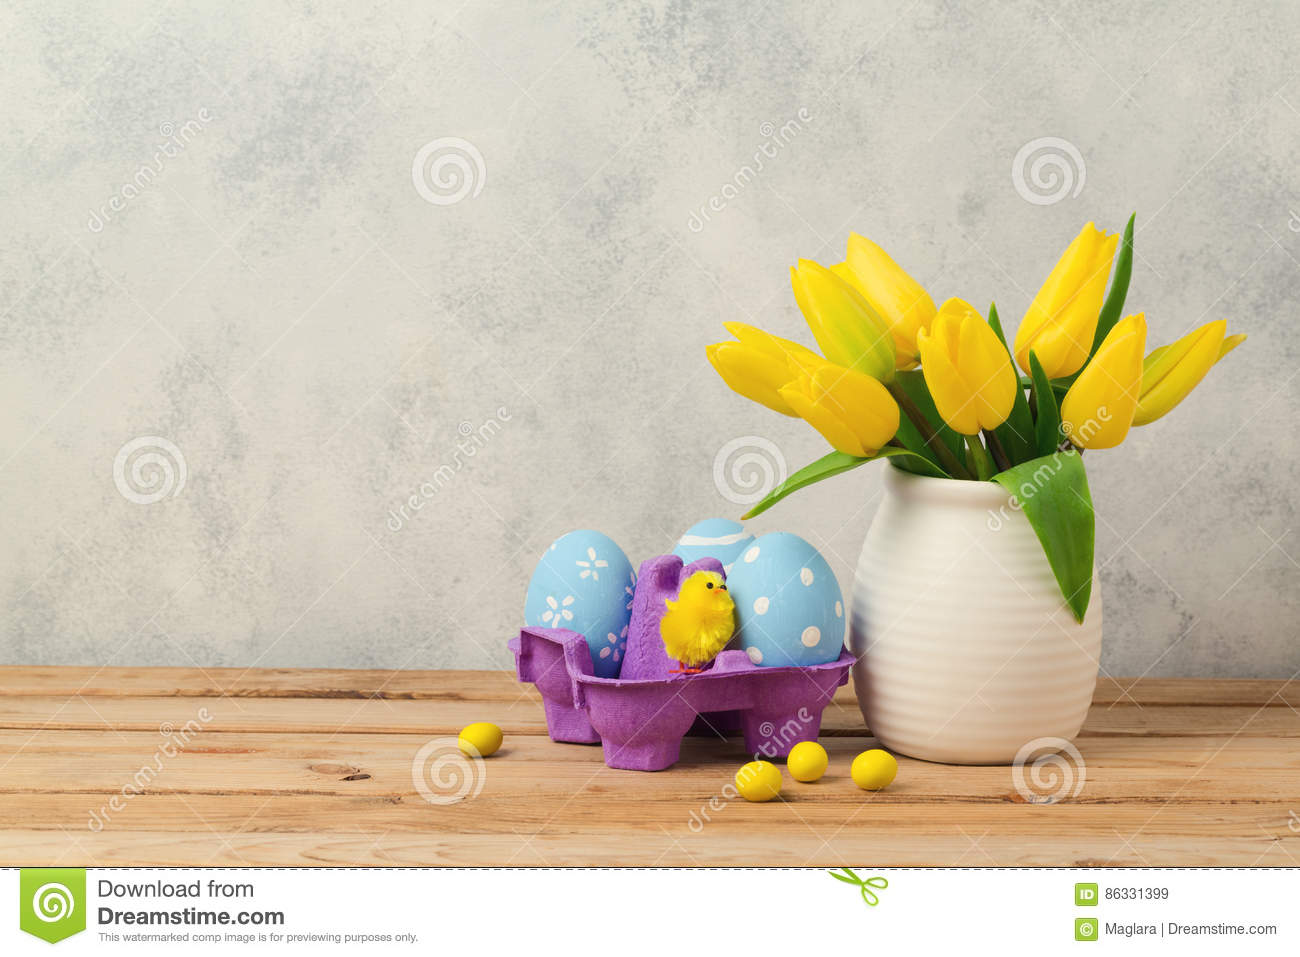 Easter holiday concept with tulip flowers and eggs on wooden table